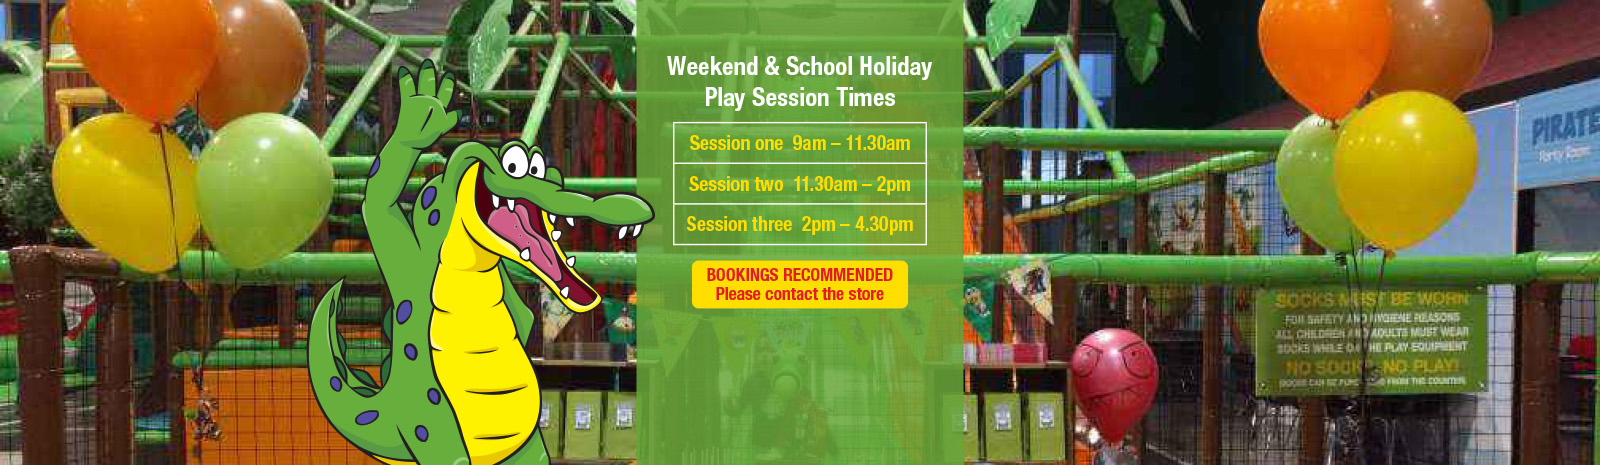 play-sessions-bookings